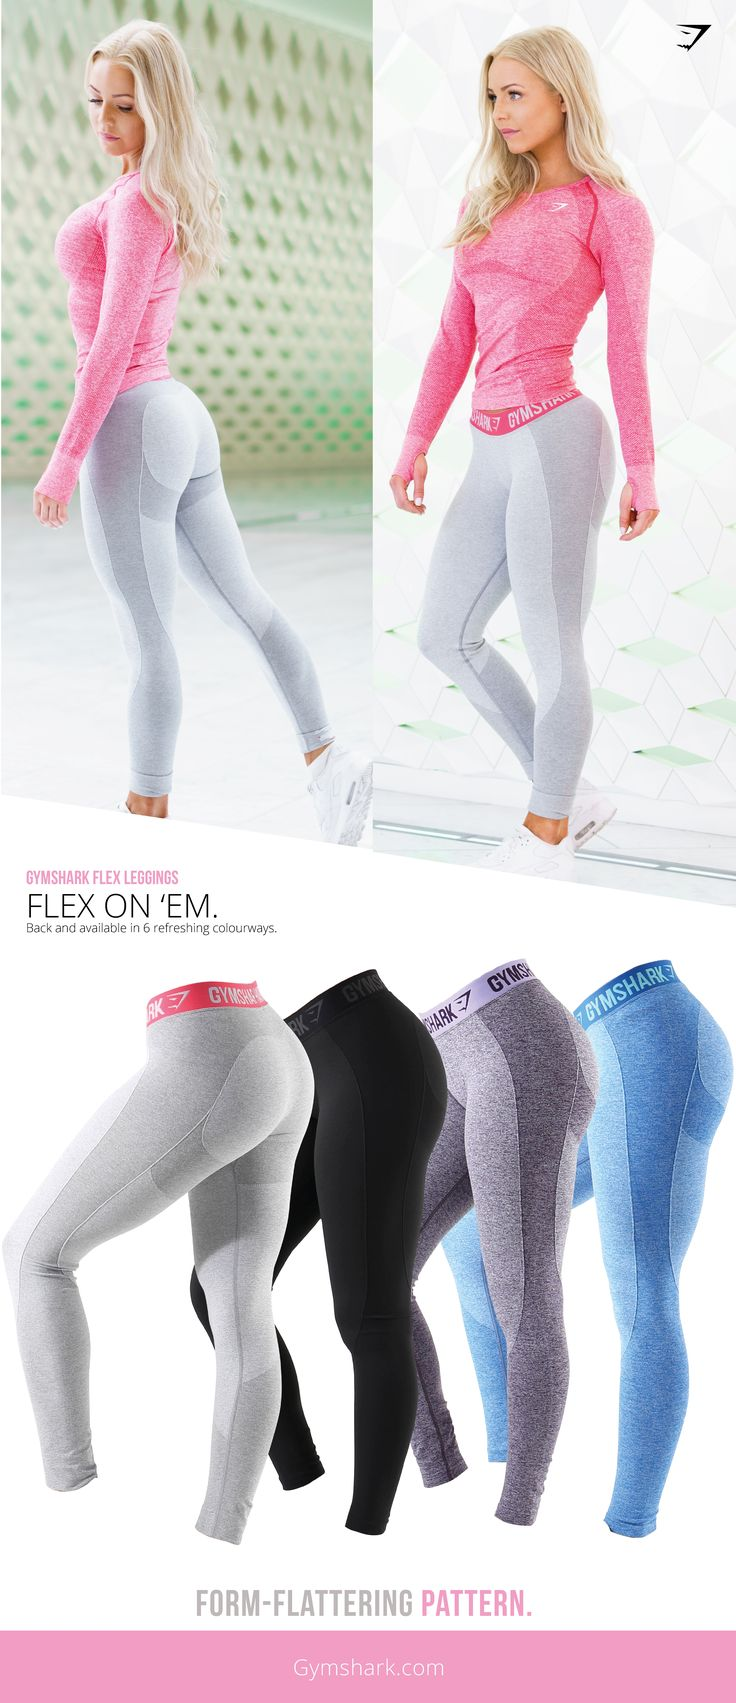 Flex on 'Em. Form hugging and figure flattering, the Gymshark Flex Leggings combine our seamless knit with beautiful design. Available in six colourways. (Fitness Clothes)